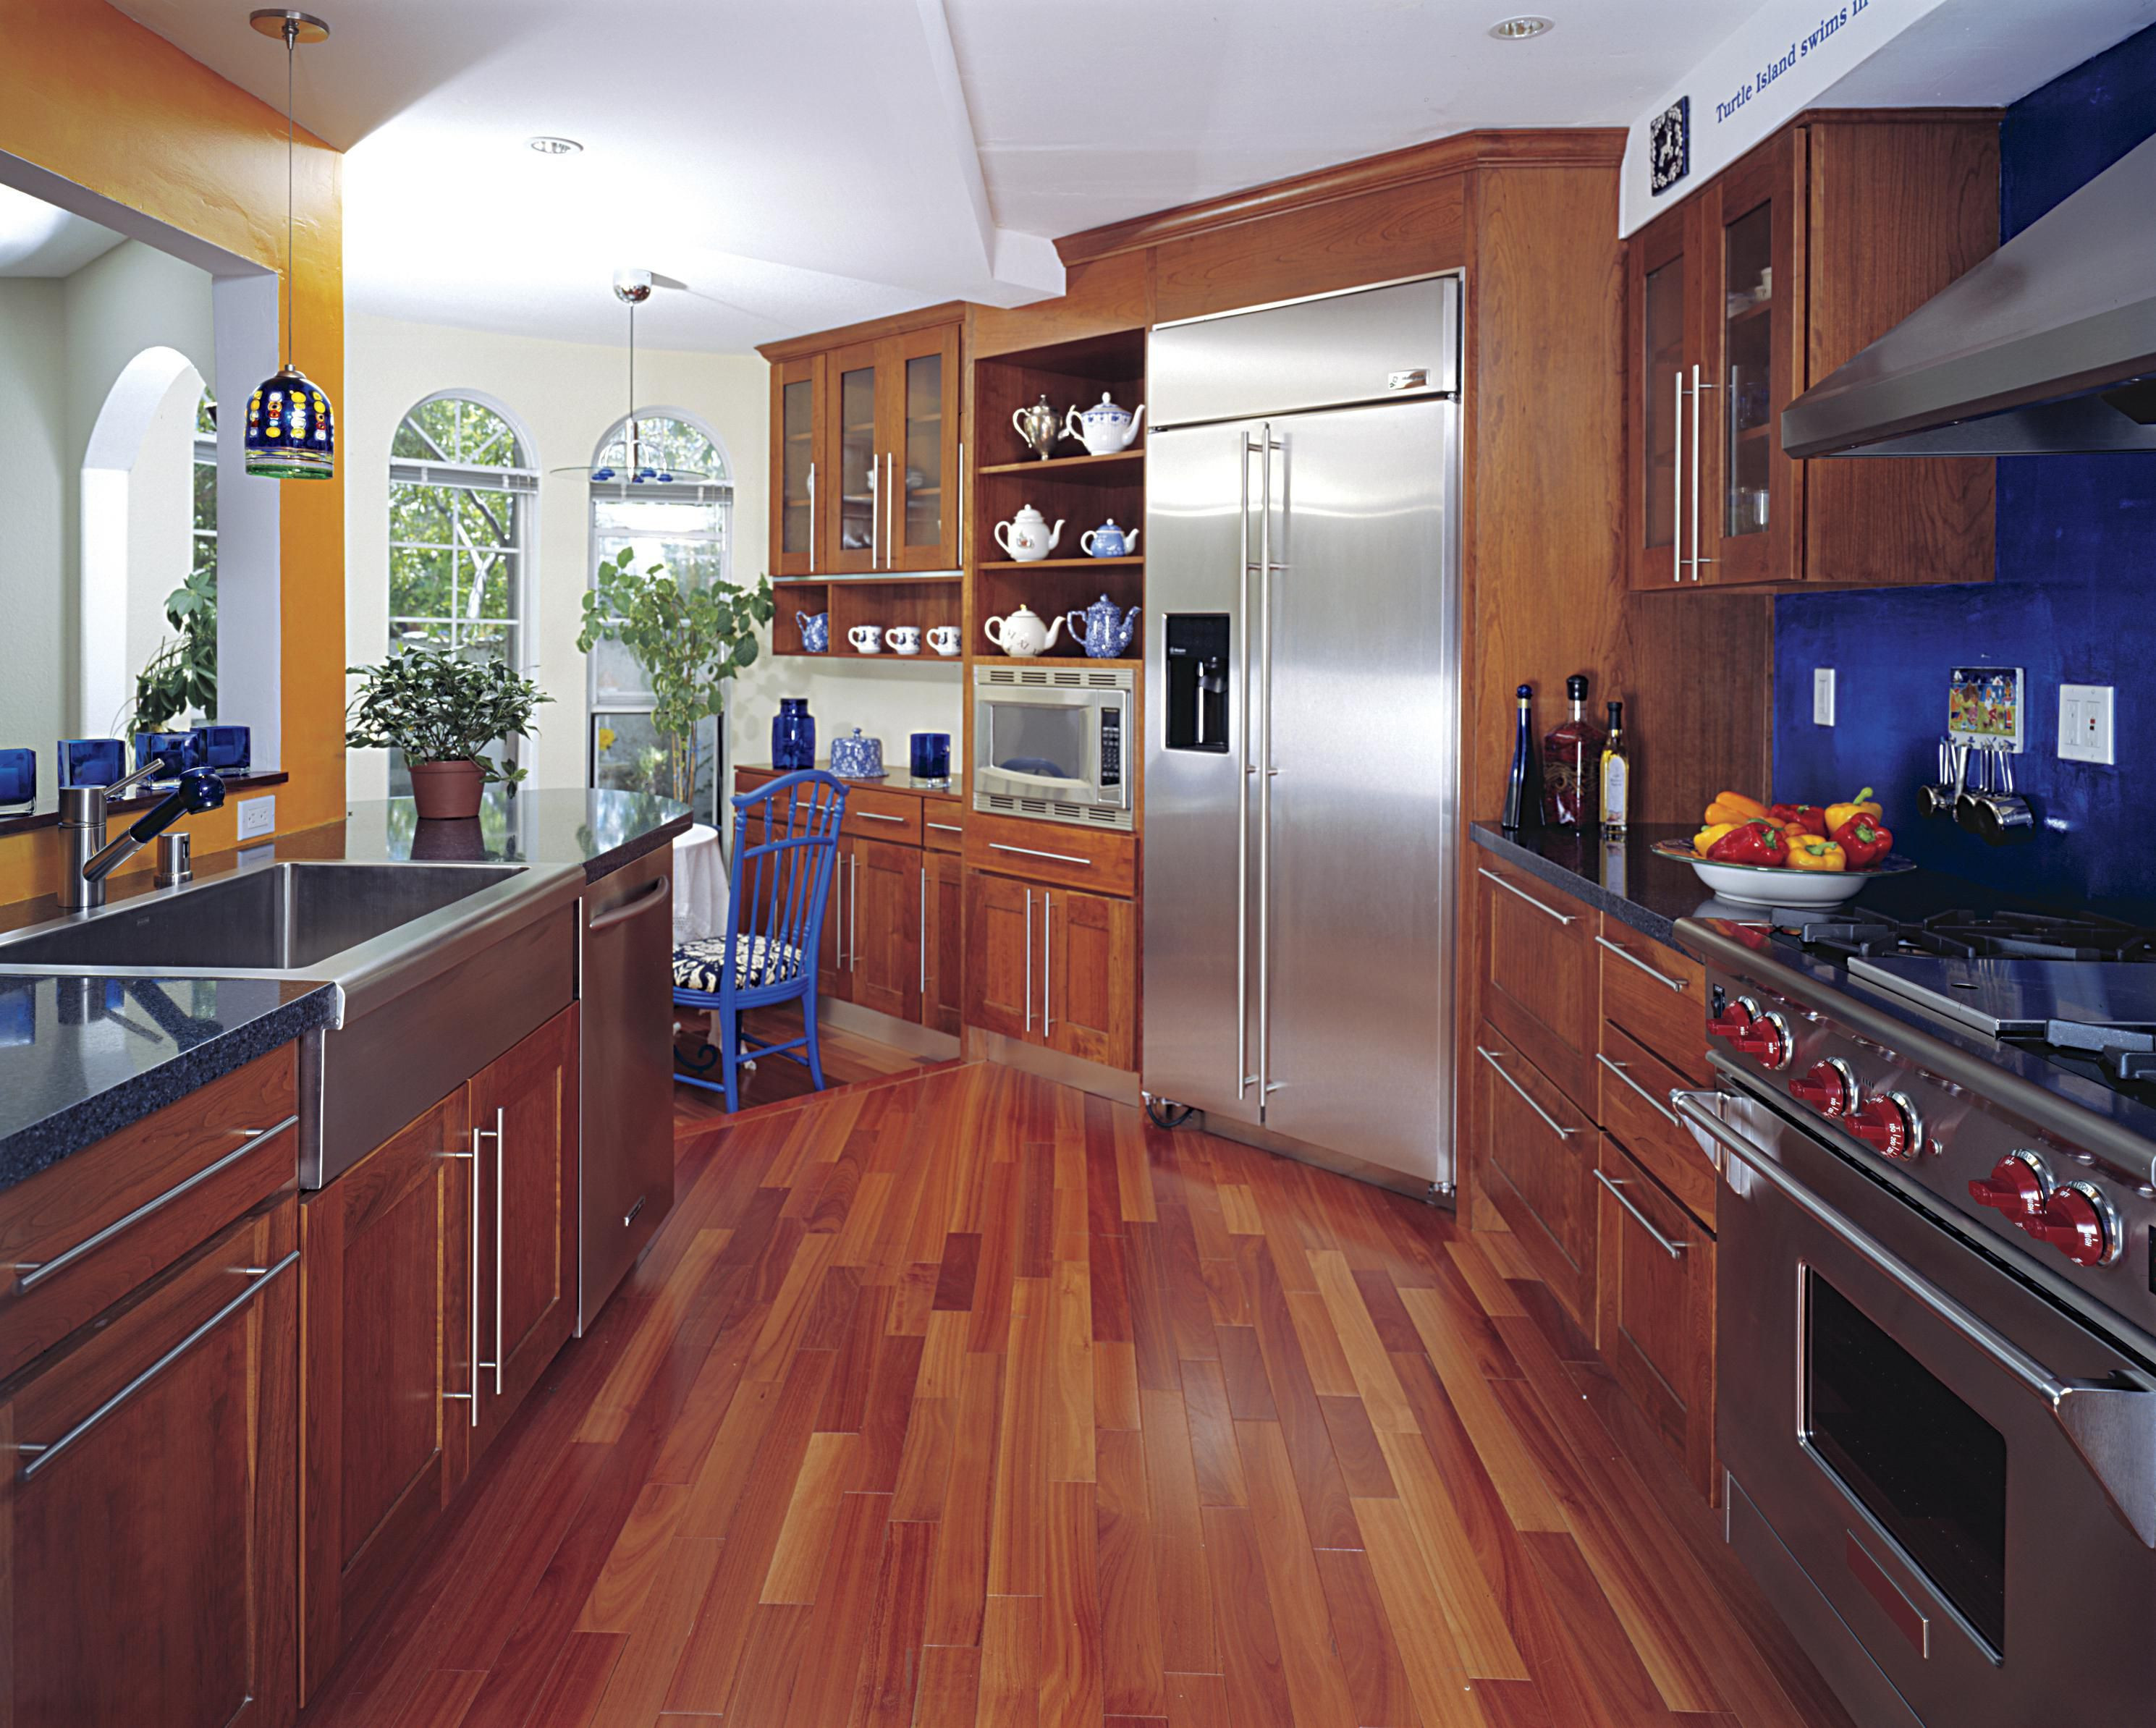 hardwood floor installation kit of hardwood floor in a kitchen is this allowed with regard to 186828472 56a49f3a5f9b58b7d0d7e142